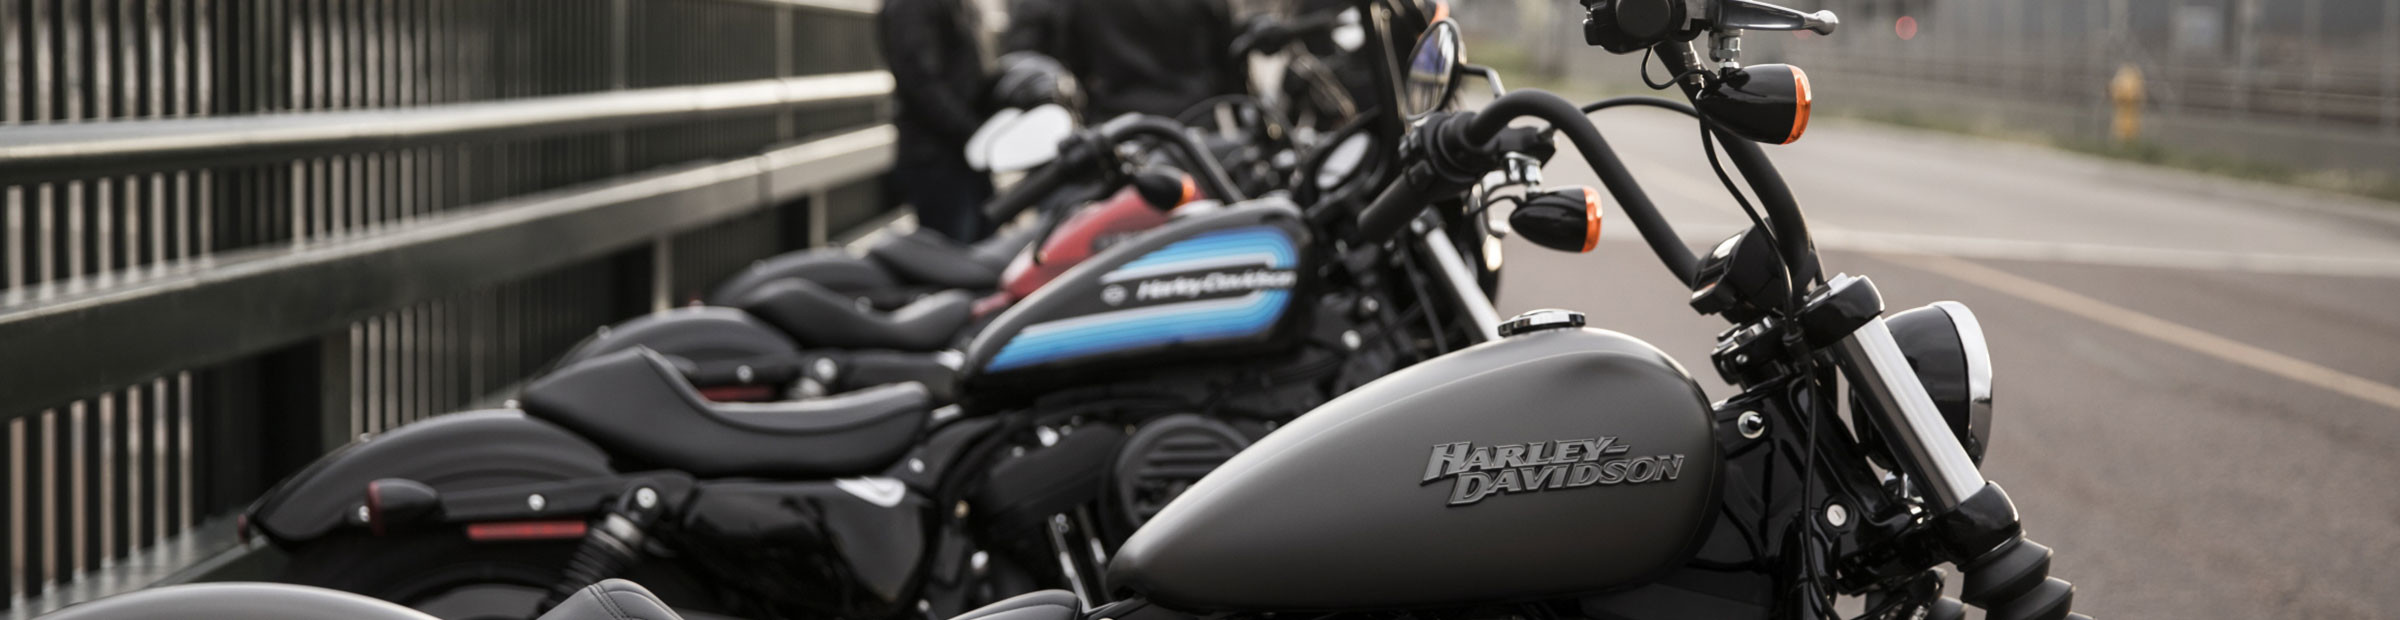 Trade-In Your Ride at Mountain State Harley-Davidson®!